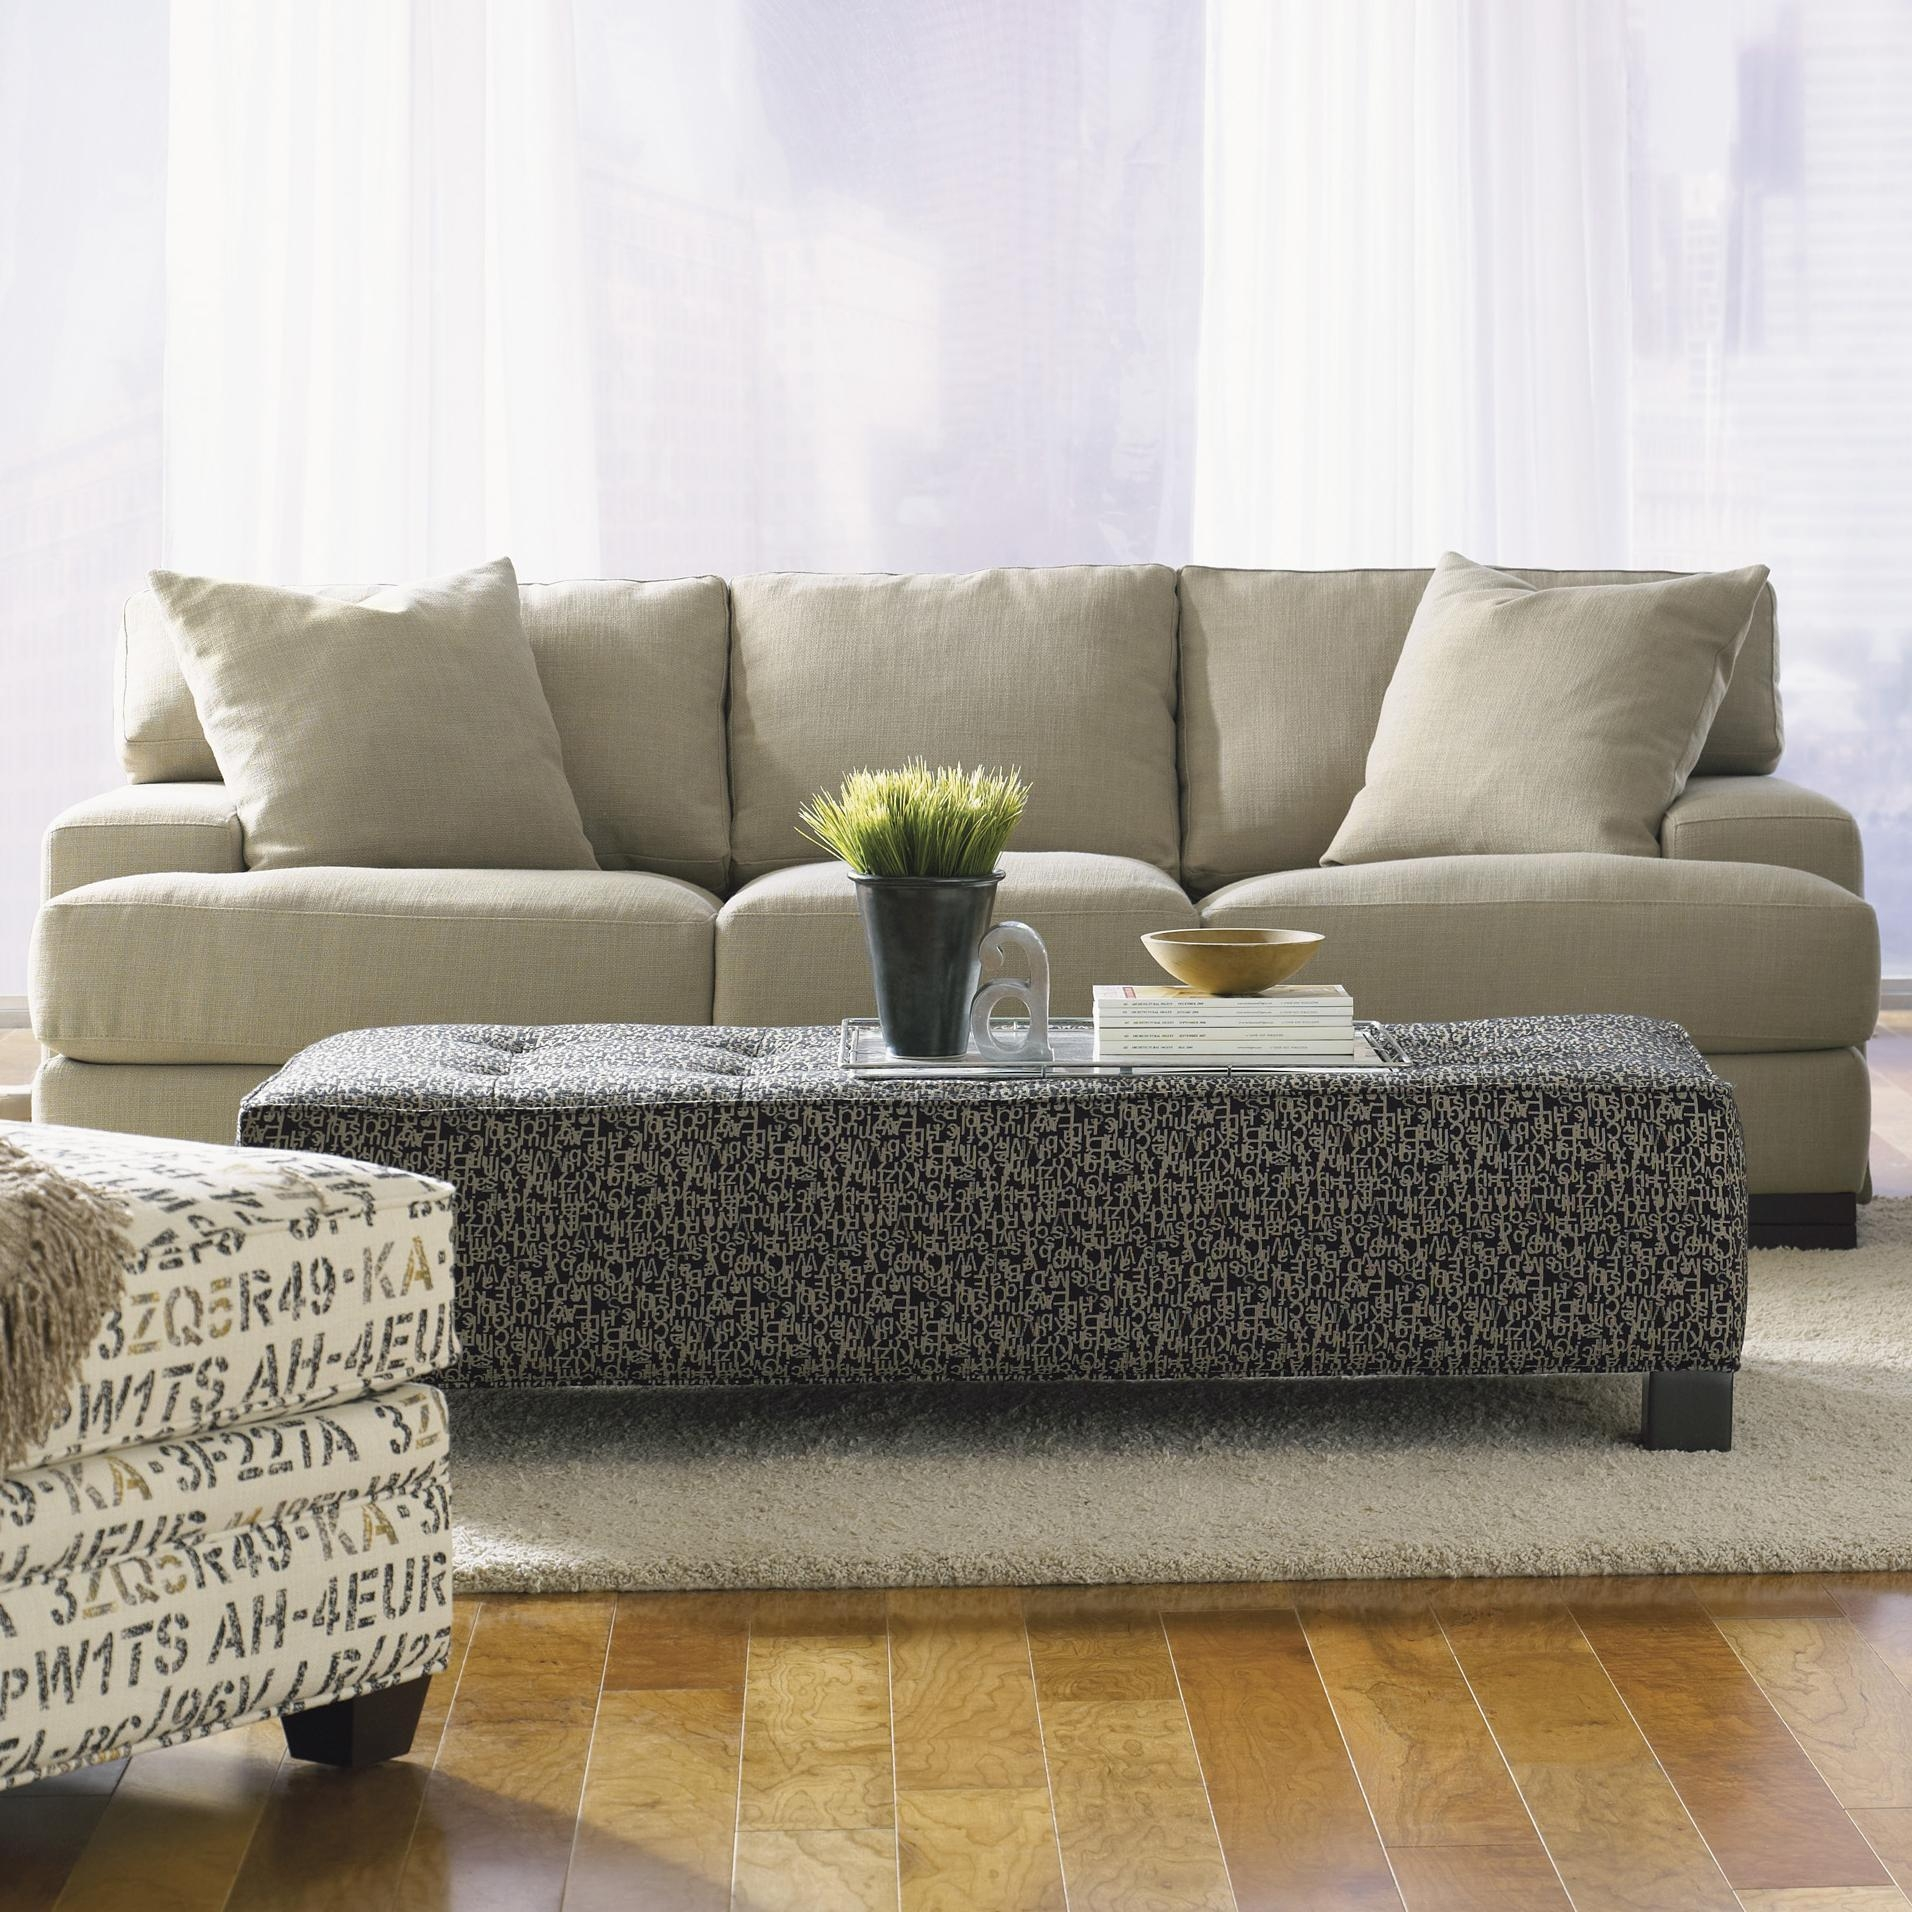 Connell's Furniture & Mattresses » Living Room For Jonathan Sofa (View 7 of 20)